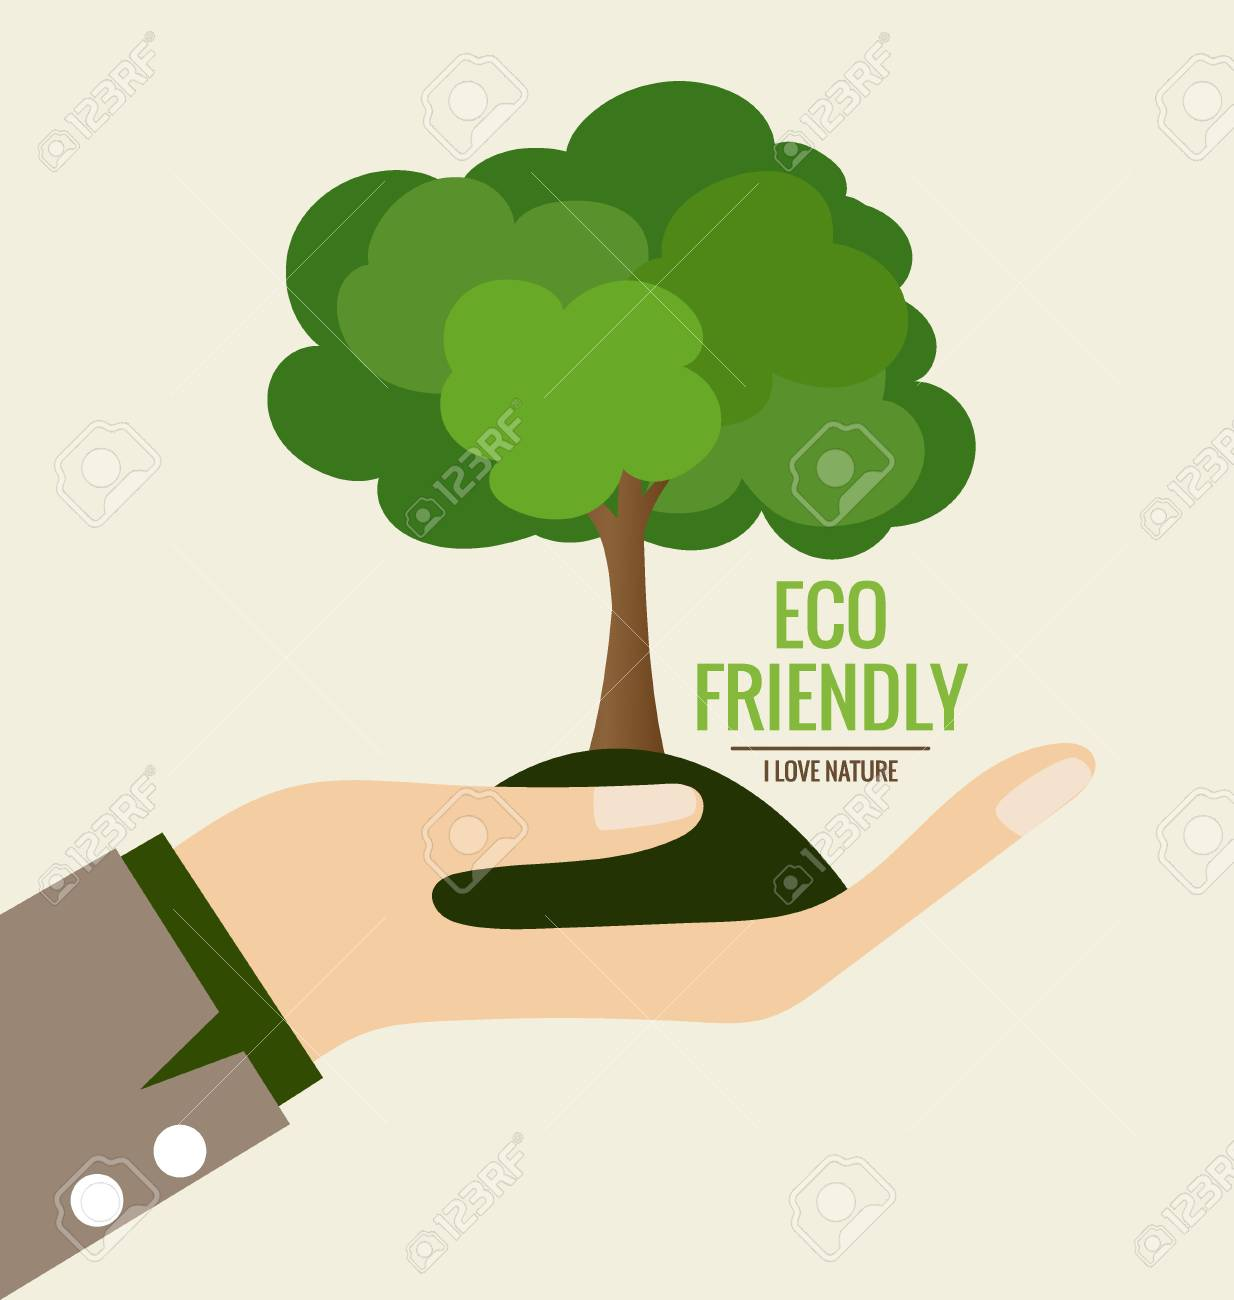 ECO FRIENDLY. Ecology concept with Hand and tree background. Vector illustration. - 41226129